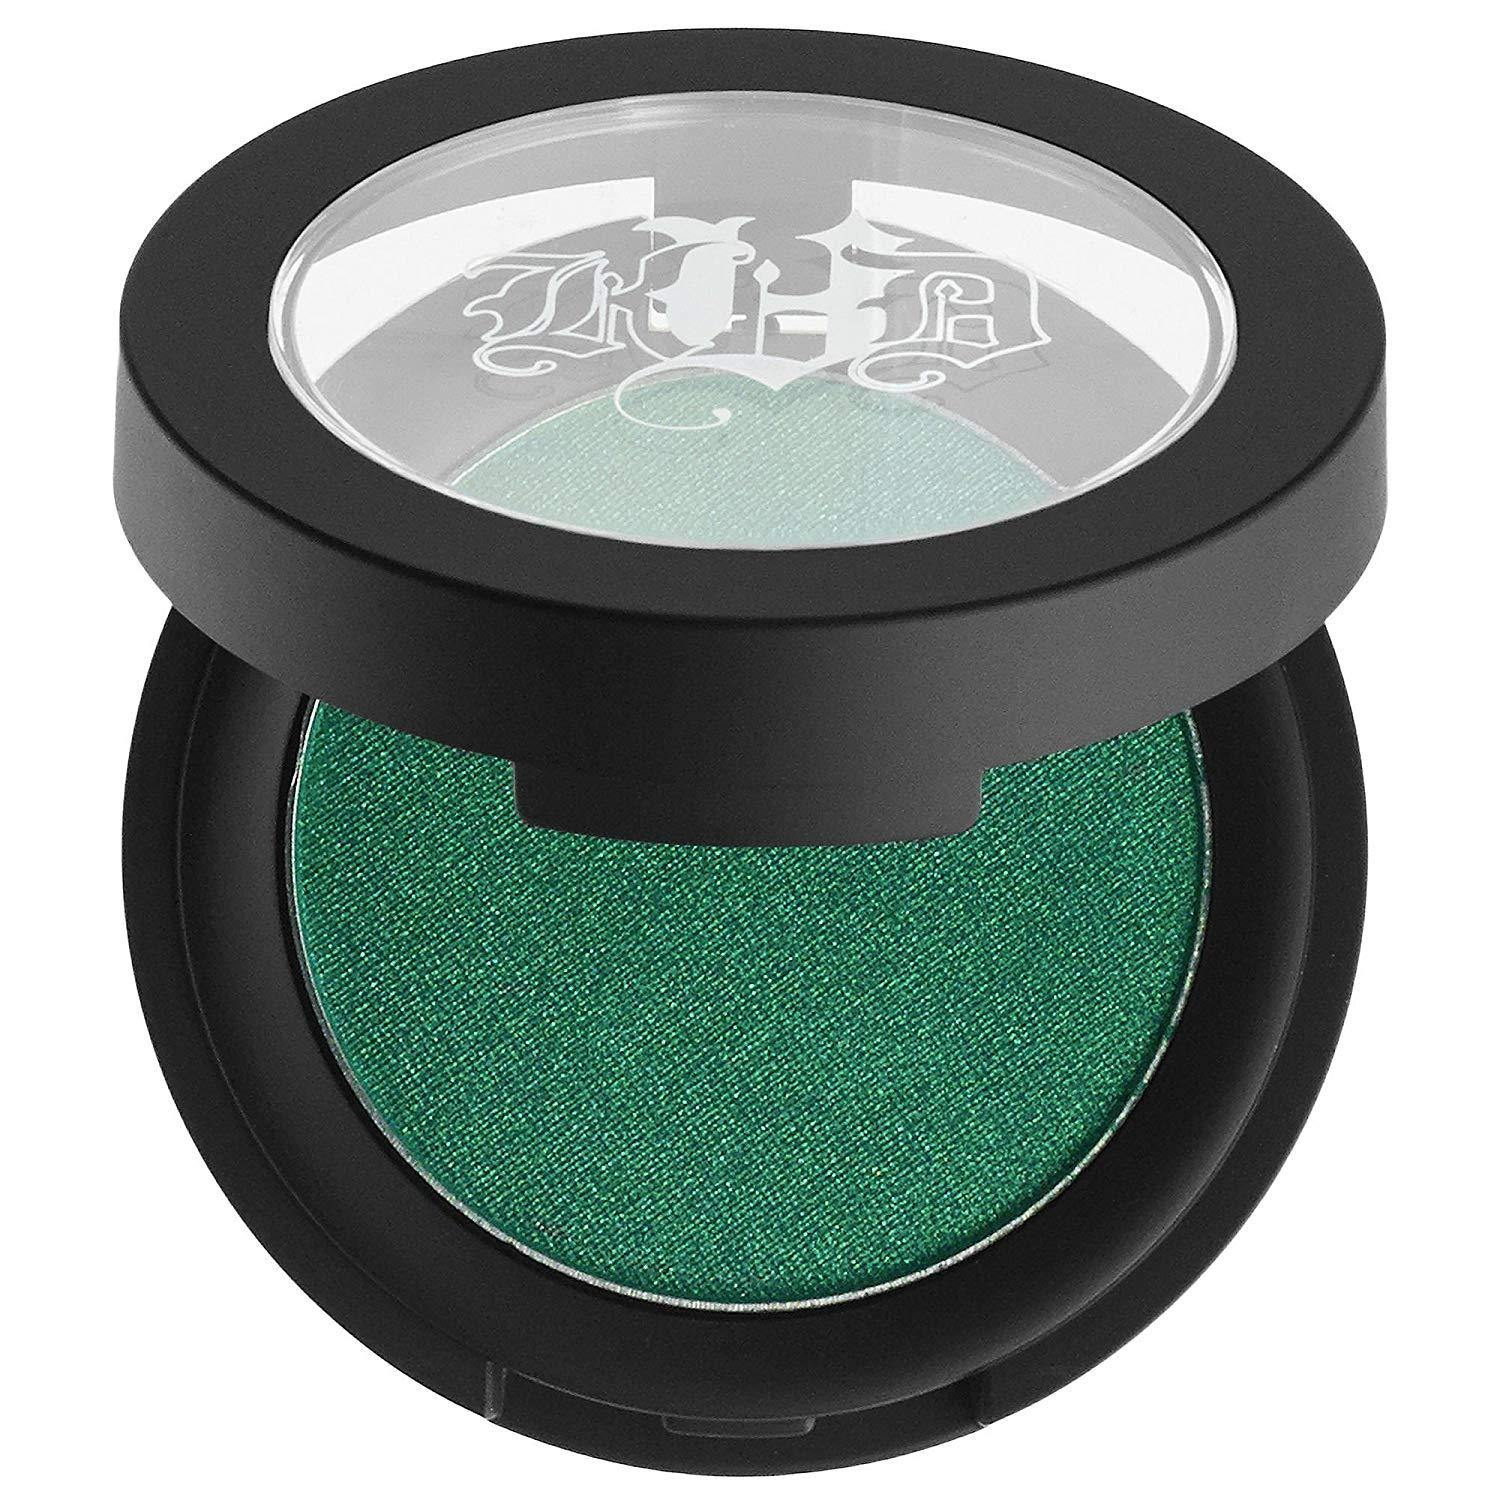 Kat Von D - Metal Crush Eyeshadow - Lemon and Twig